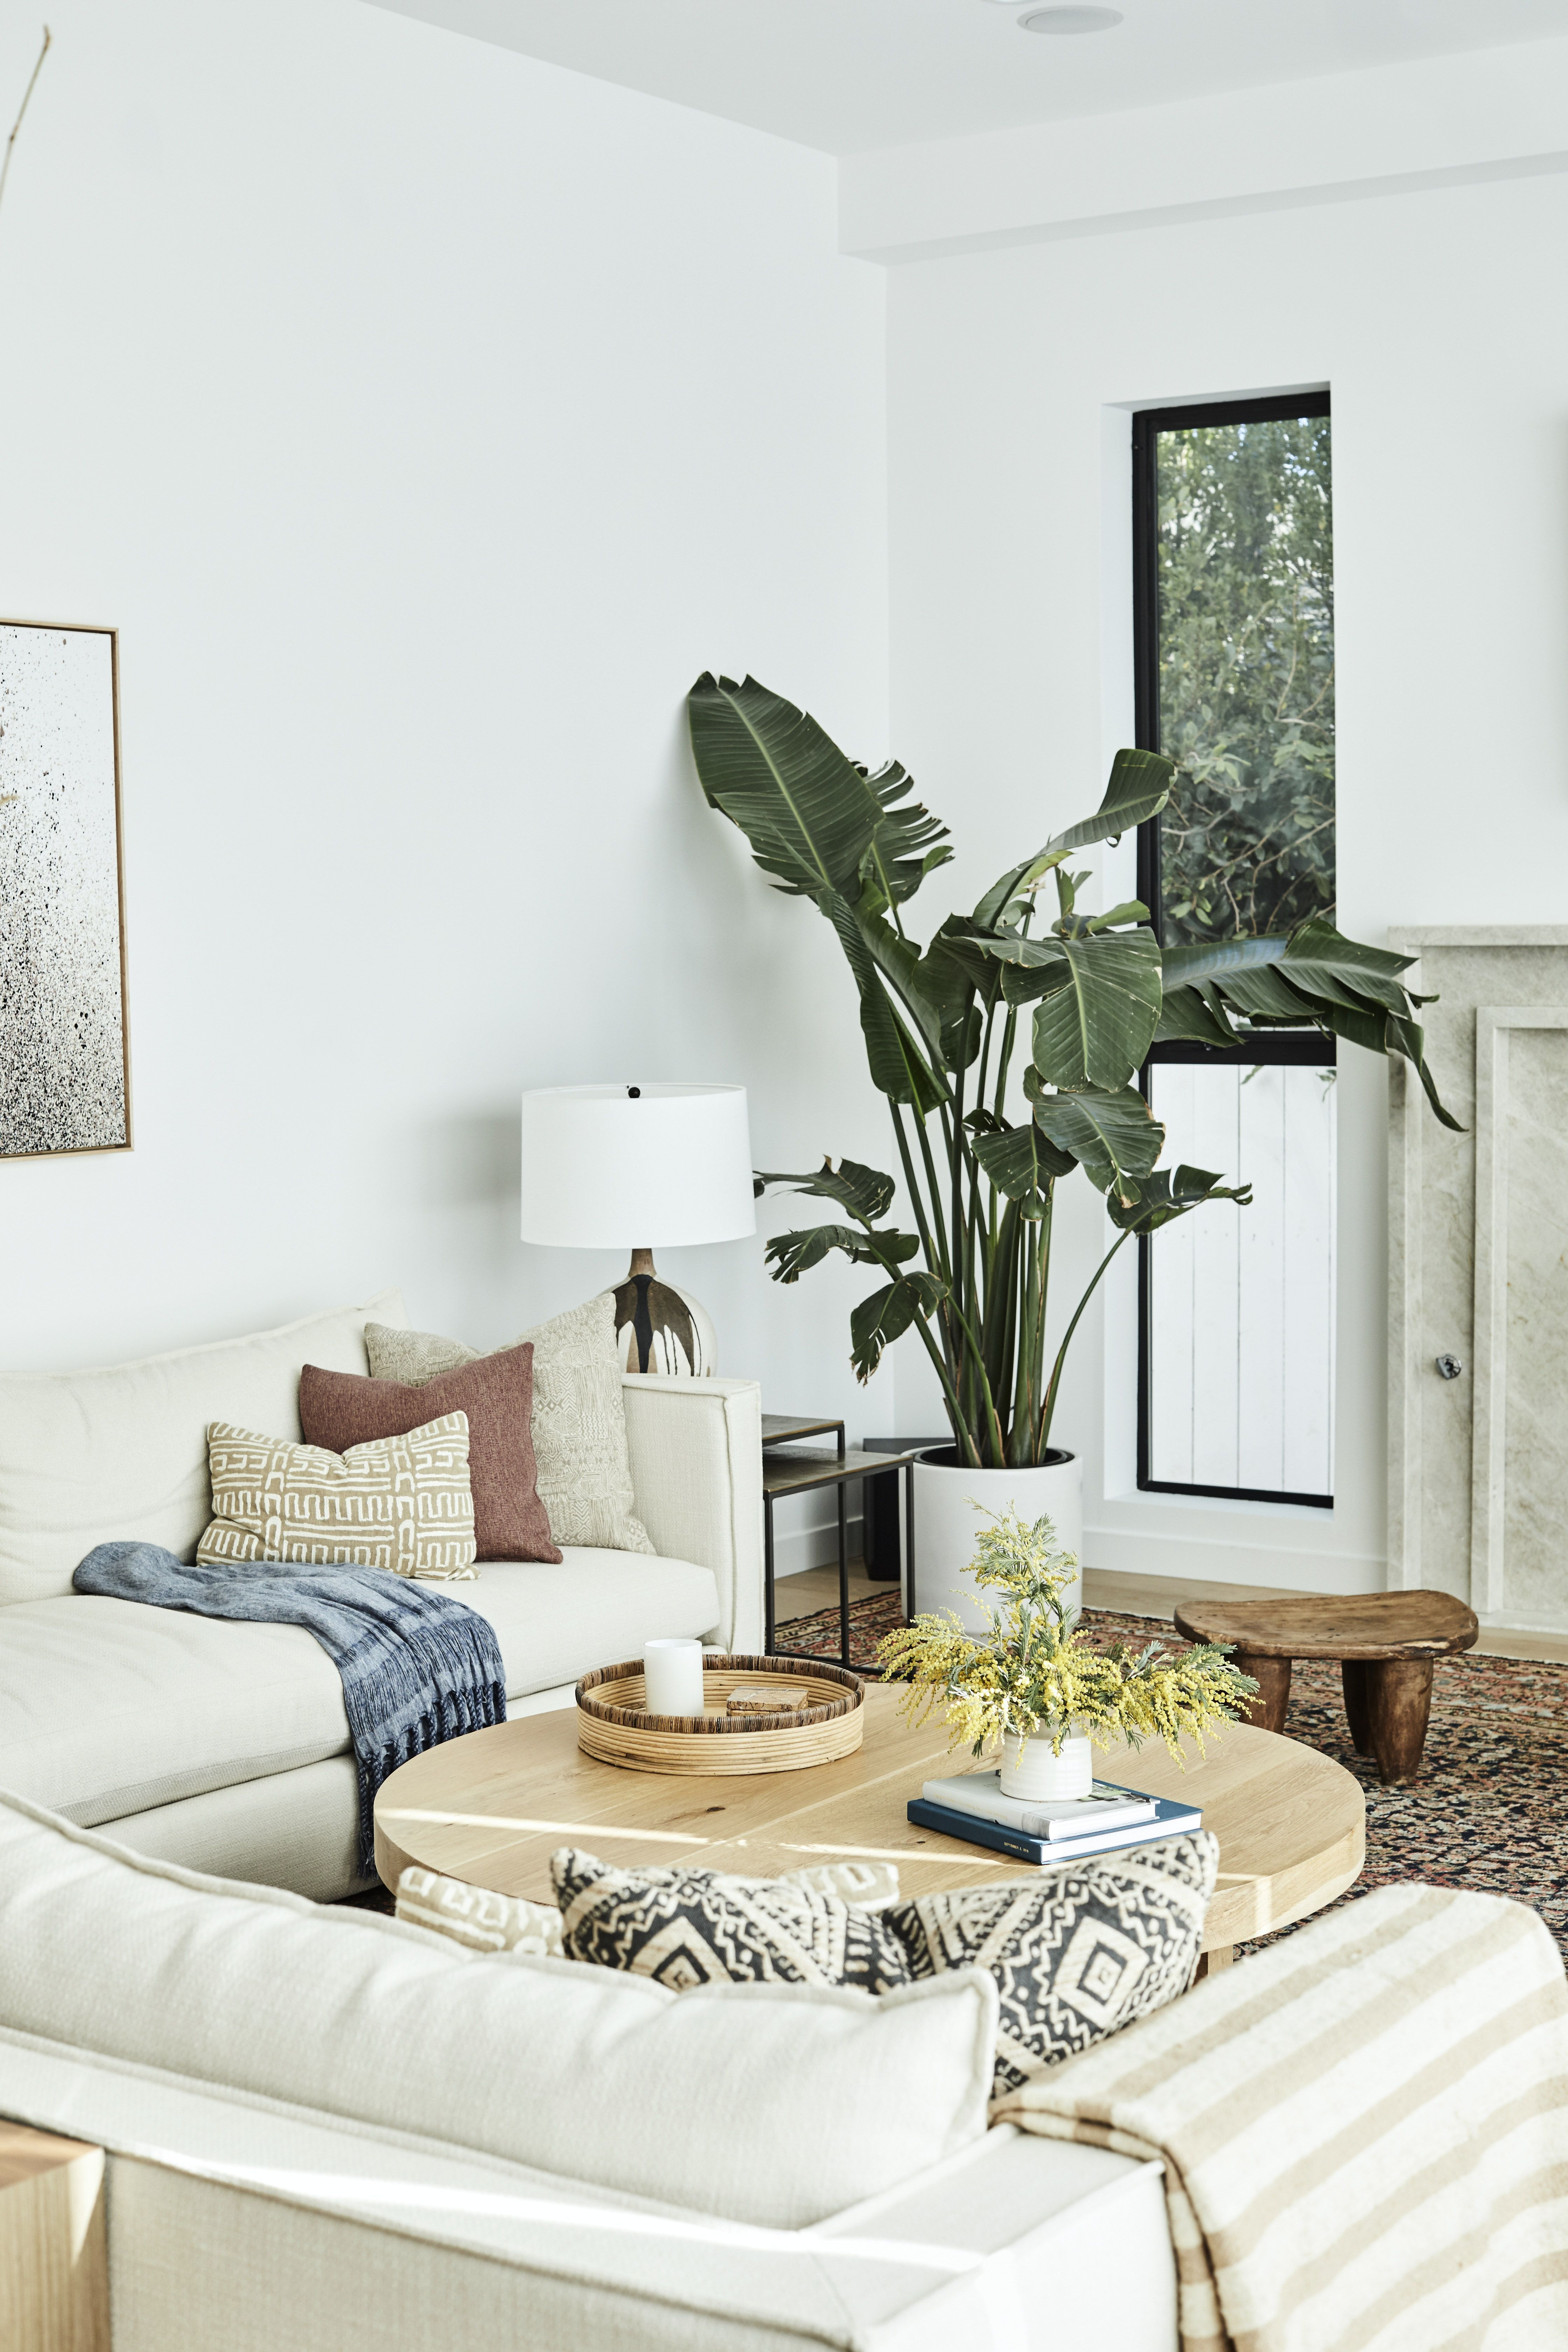 Cali Cool Takes On A New Meaning In This Light Filled Home Warm Living Room Design Minimalist Living Room Round Coffee Table Living Room